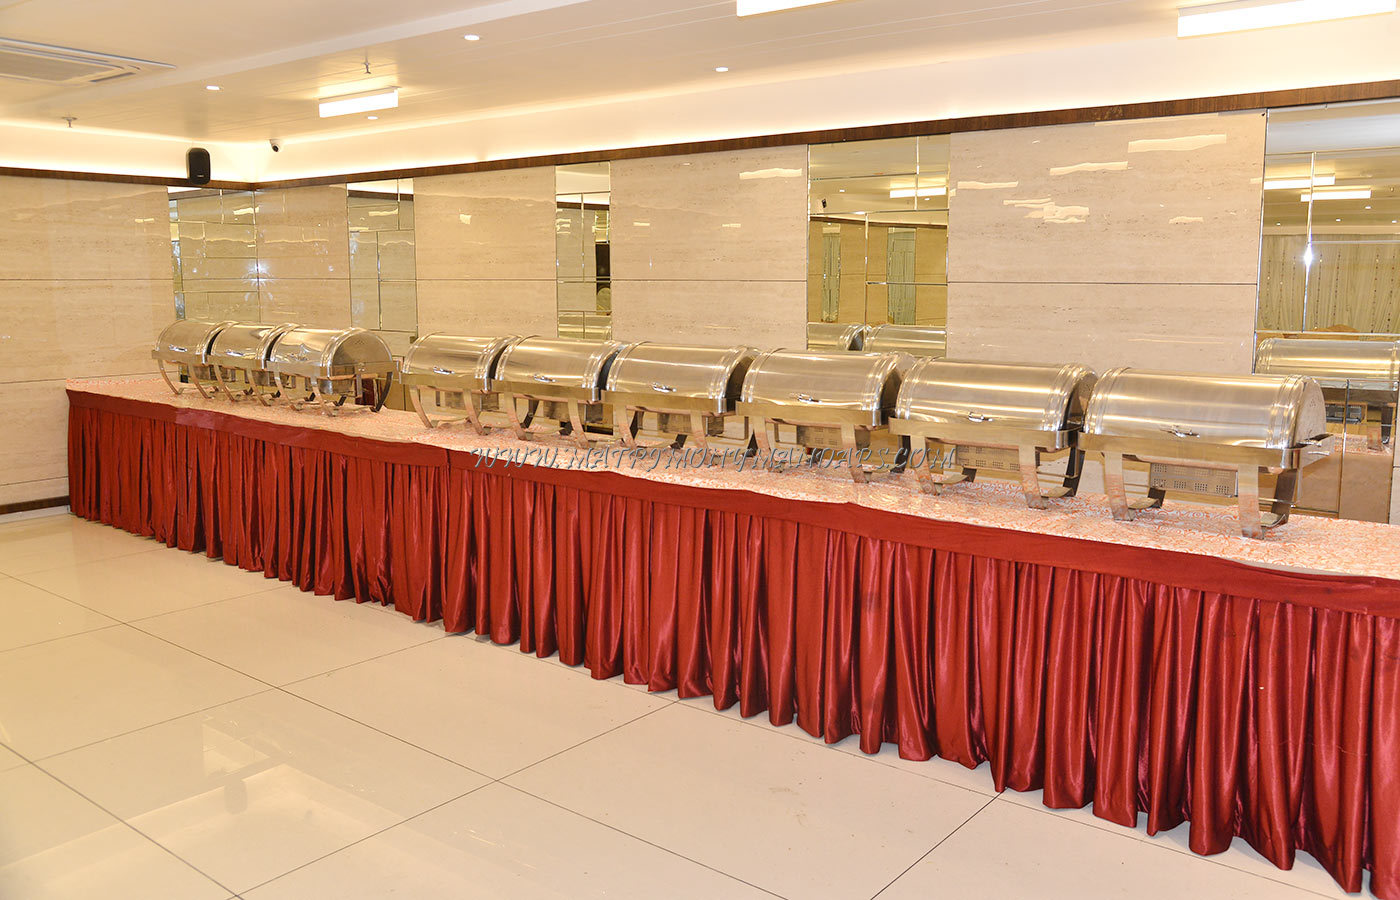 Find the availability of the Hotel Kass 1 (A/C) in Kompally, Hyderabad and avail special offers